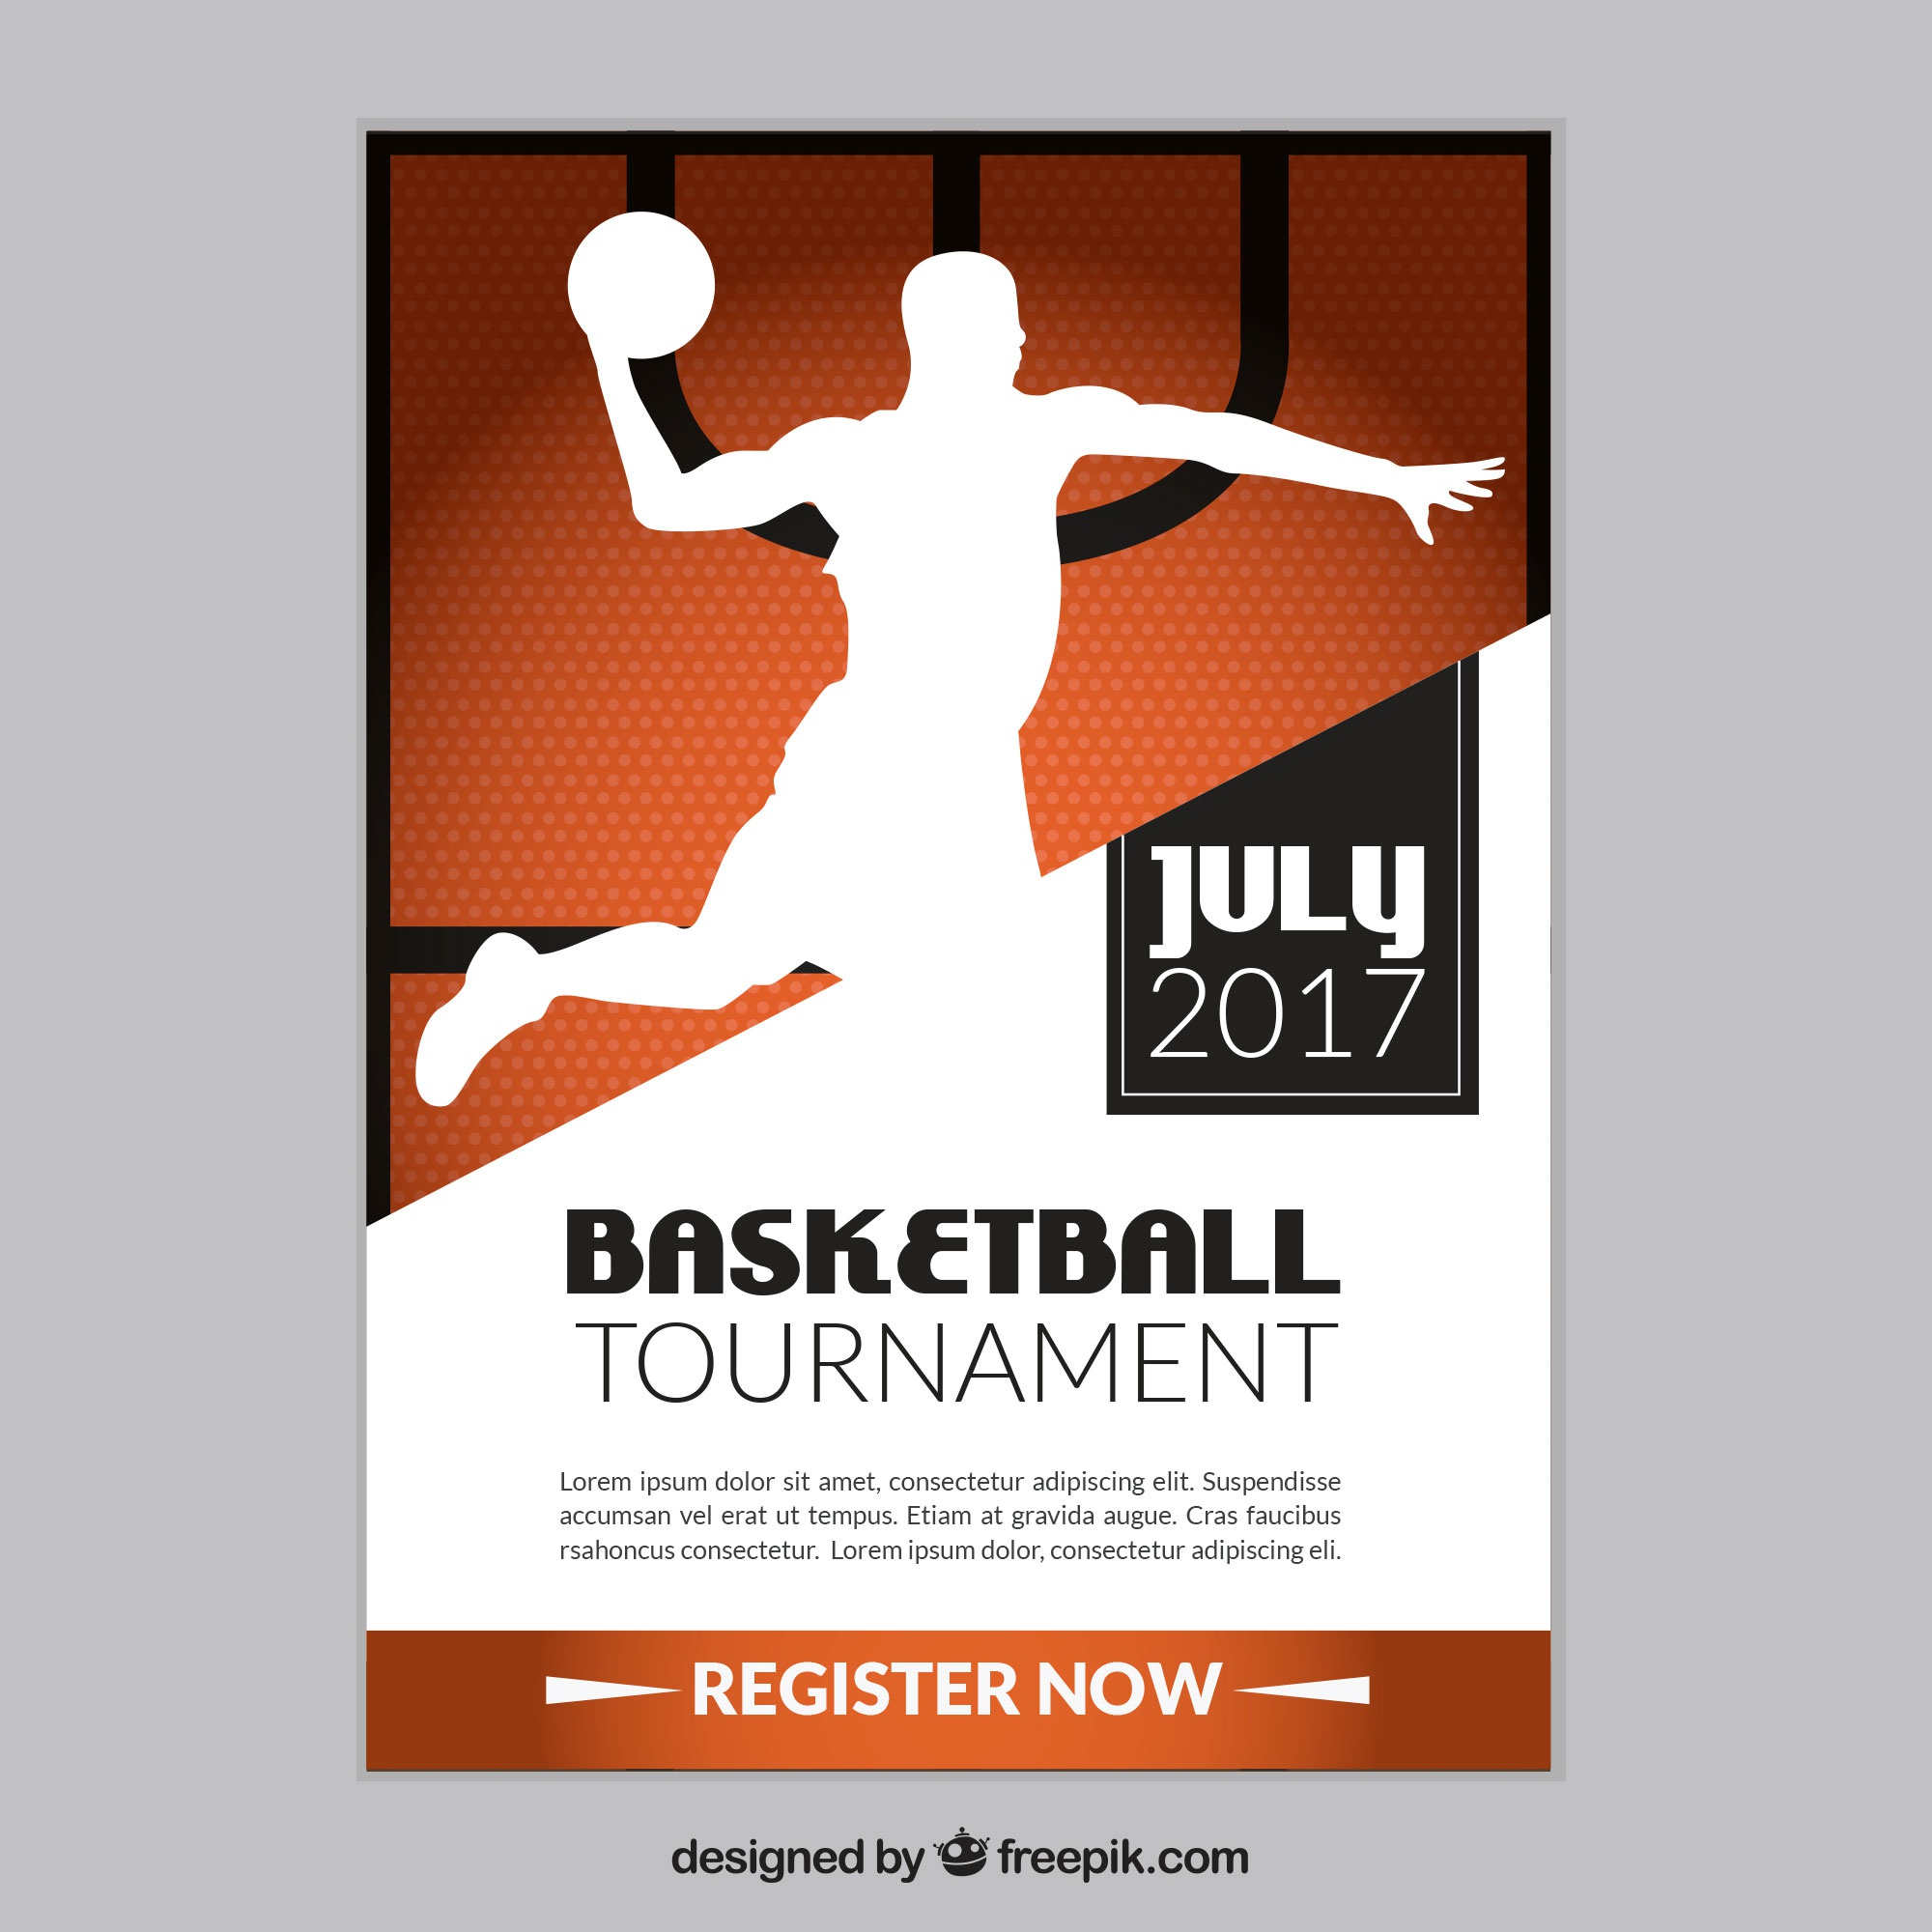 Basketball tournament brochure with player silhouette